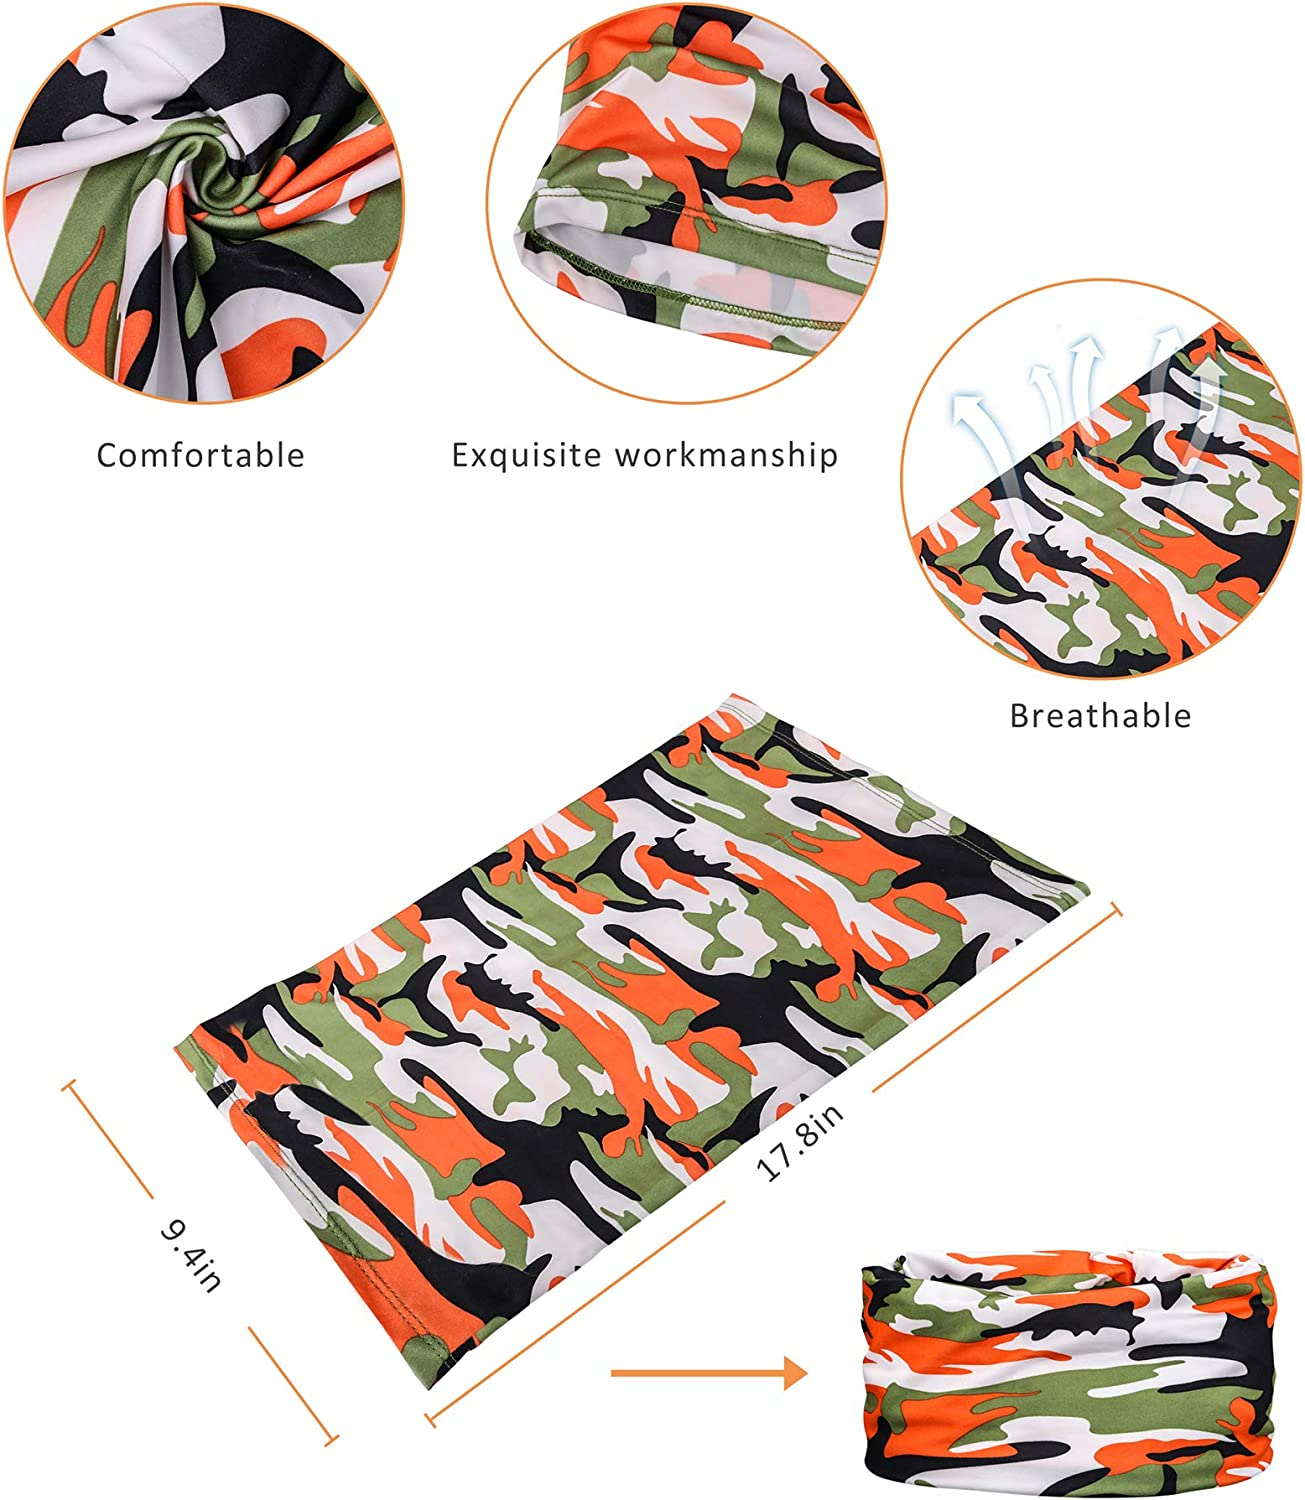 Reusable Breathable Bandana Balaclava 4 Pack Headband Fishing Mask Yemo Unisex Sun UV Protection Cooling Face Scarf Cover Mask Neck Gaiter Motorcycle Face Cover for Men Women